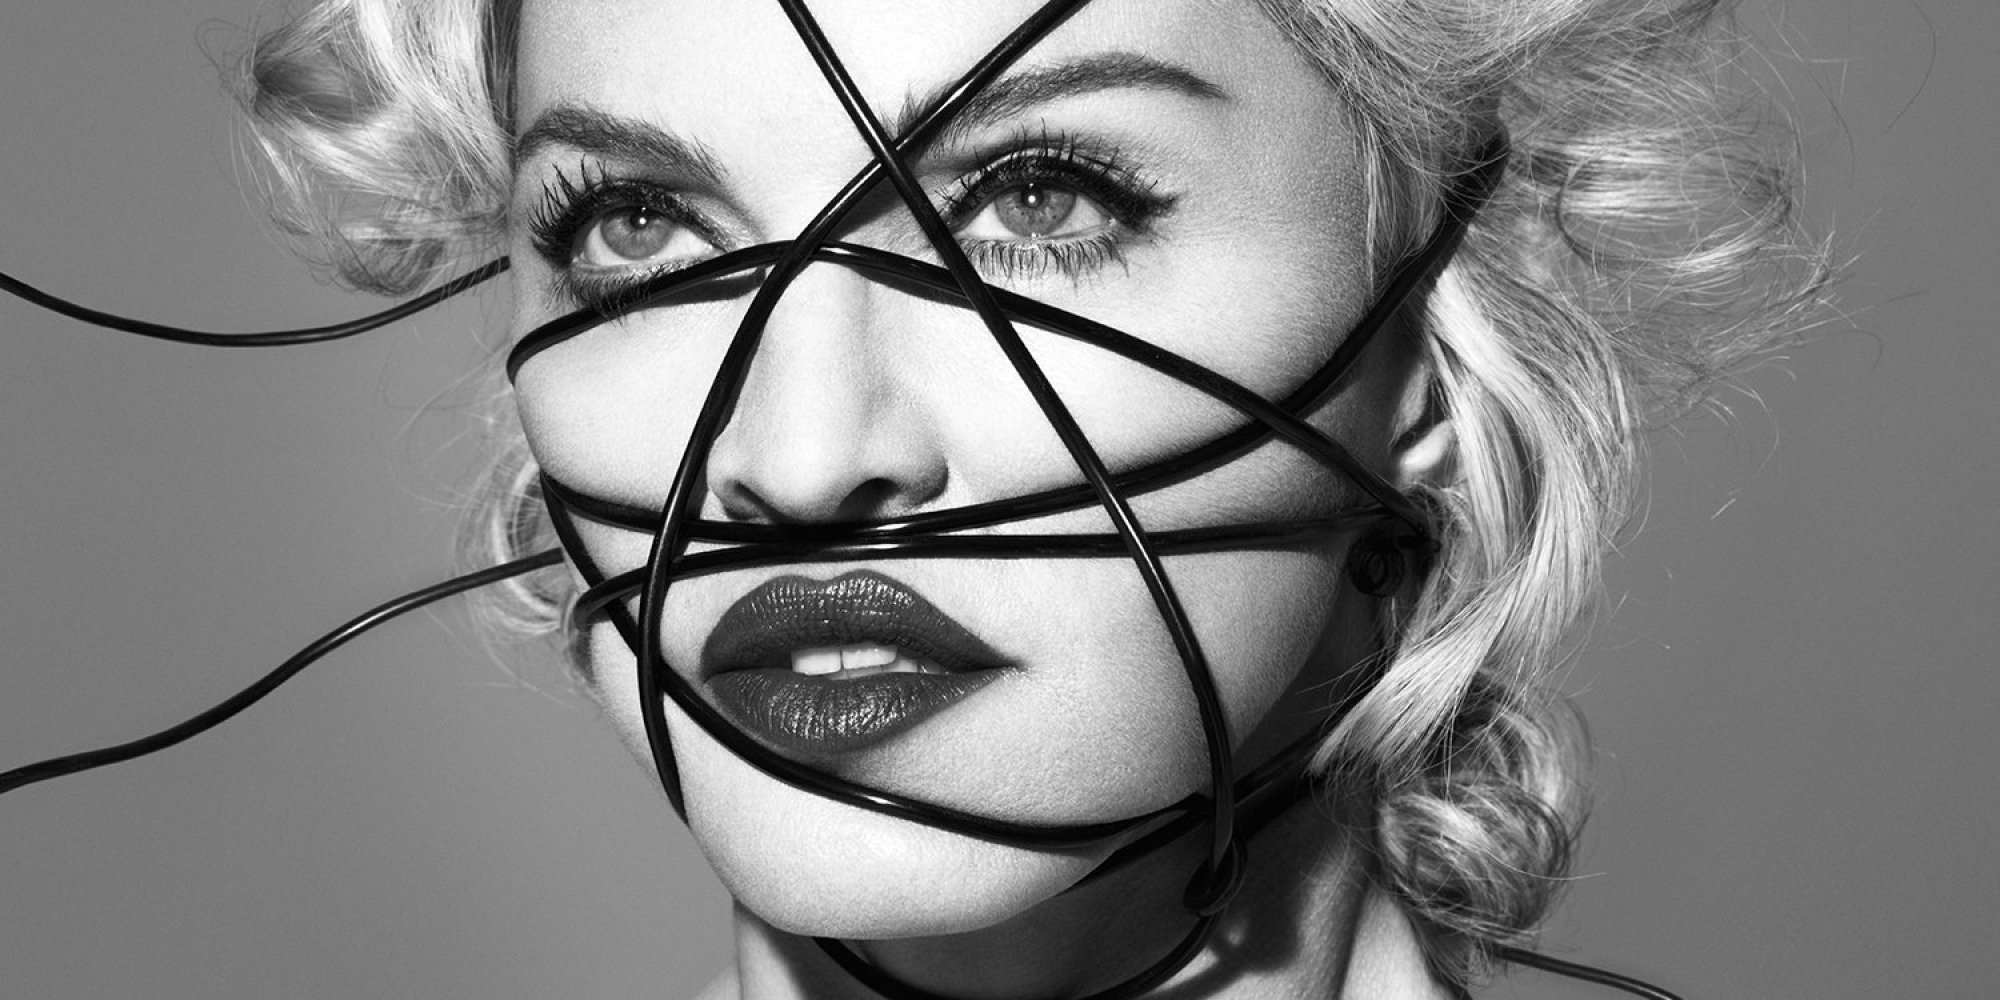 39 year-old man arrested for leaking Madonna's music